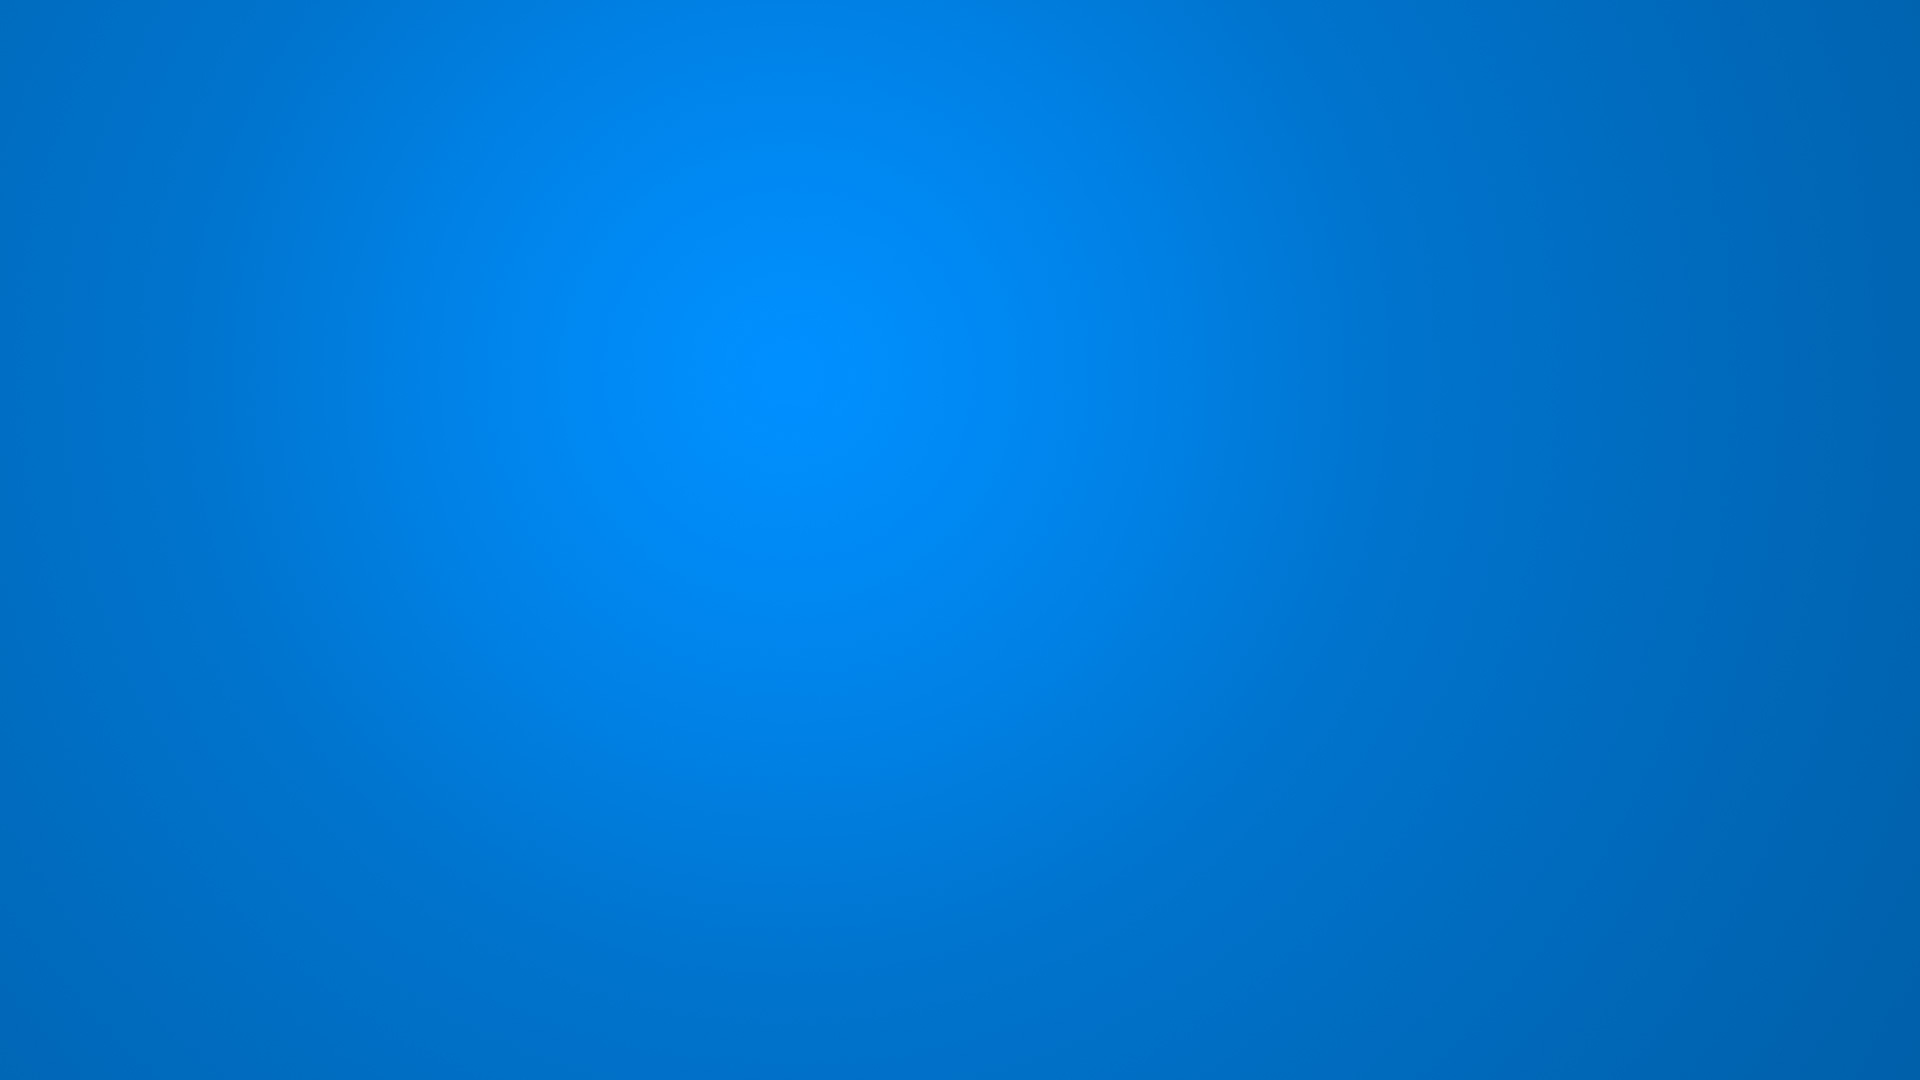 blue-Presentation-Gradient-Background